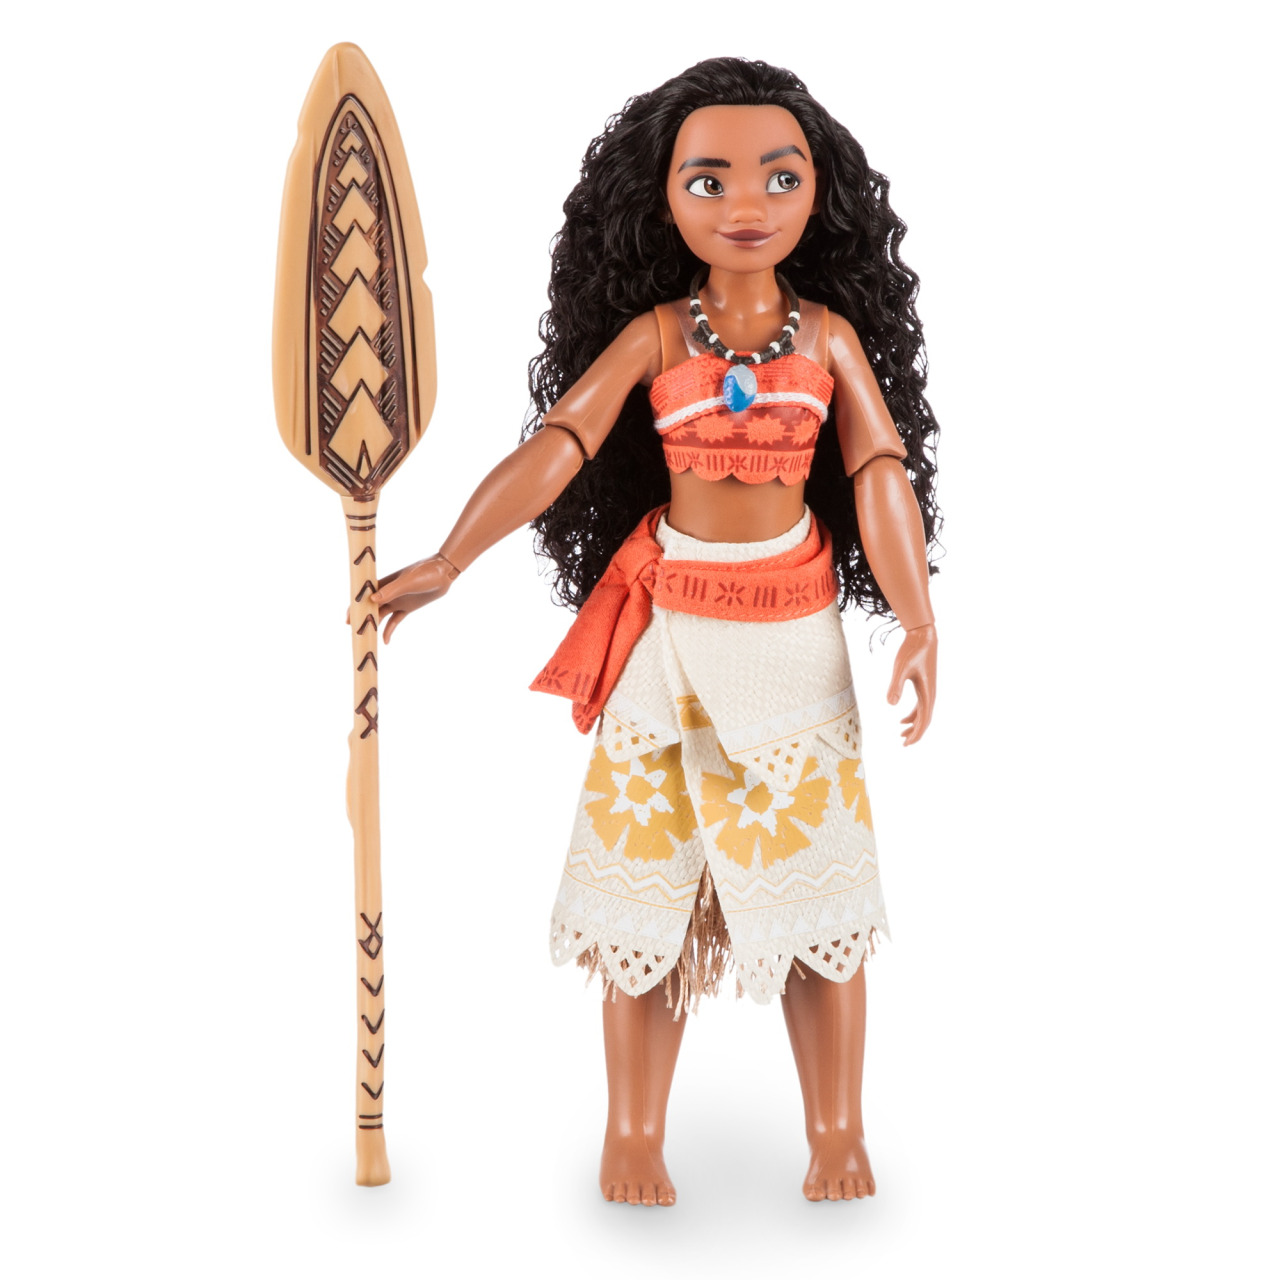 Moana Doll from डिज़्नी store